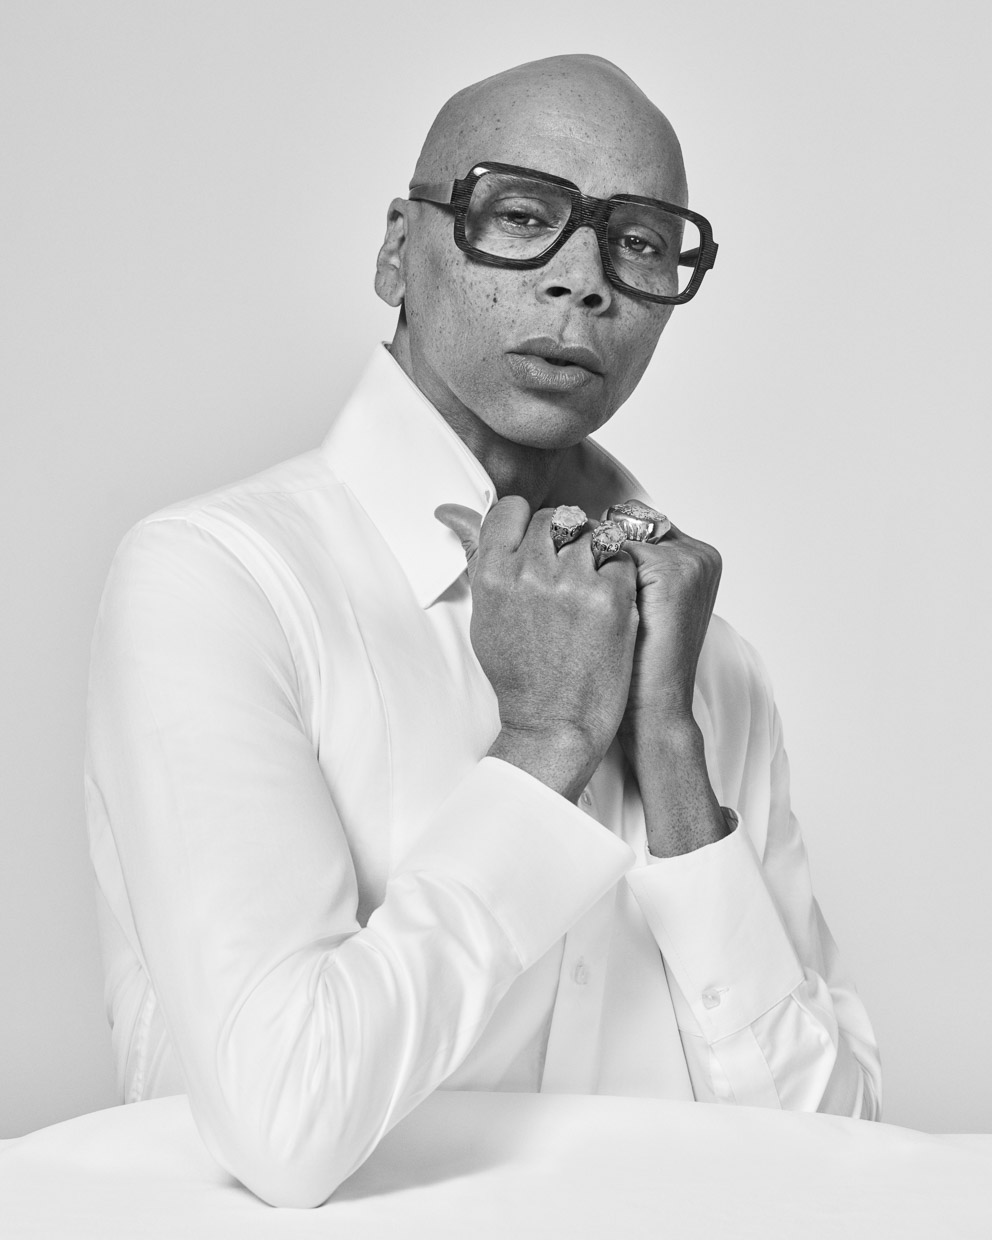 RuPaul. The Guardian.